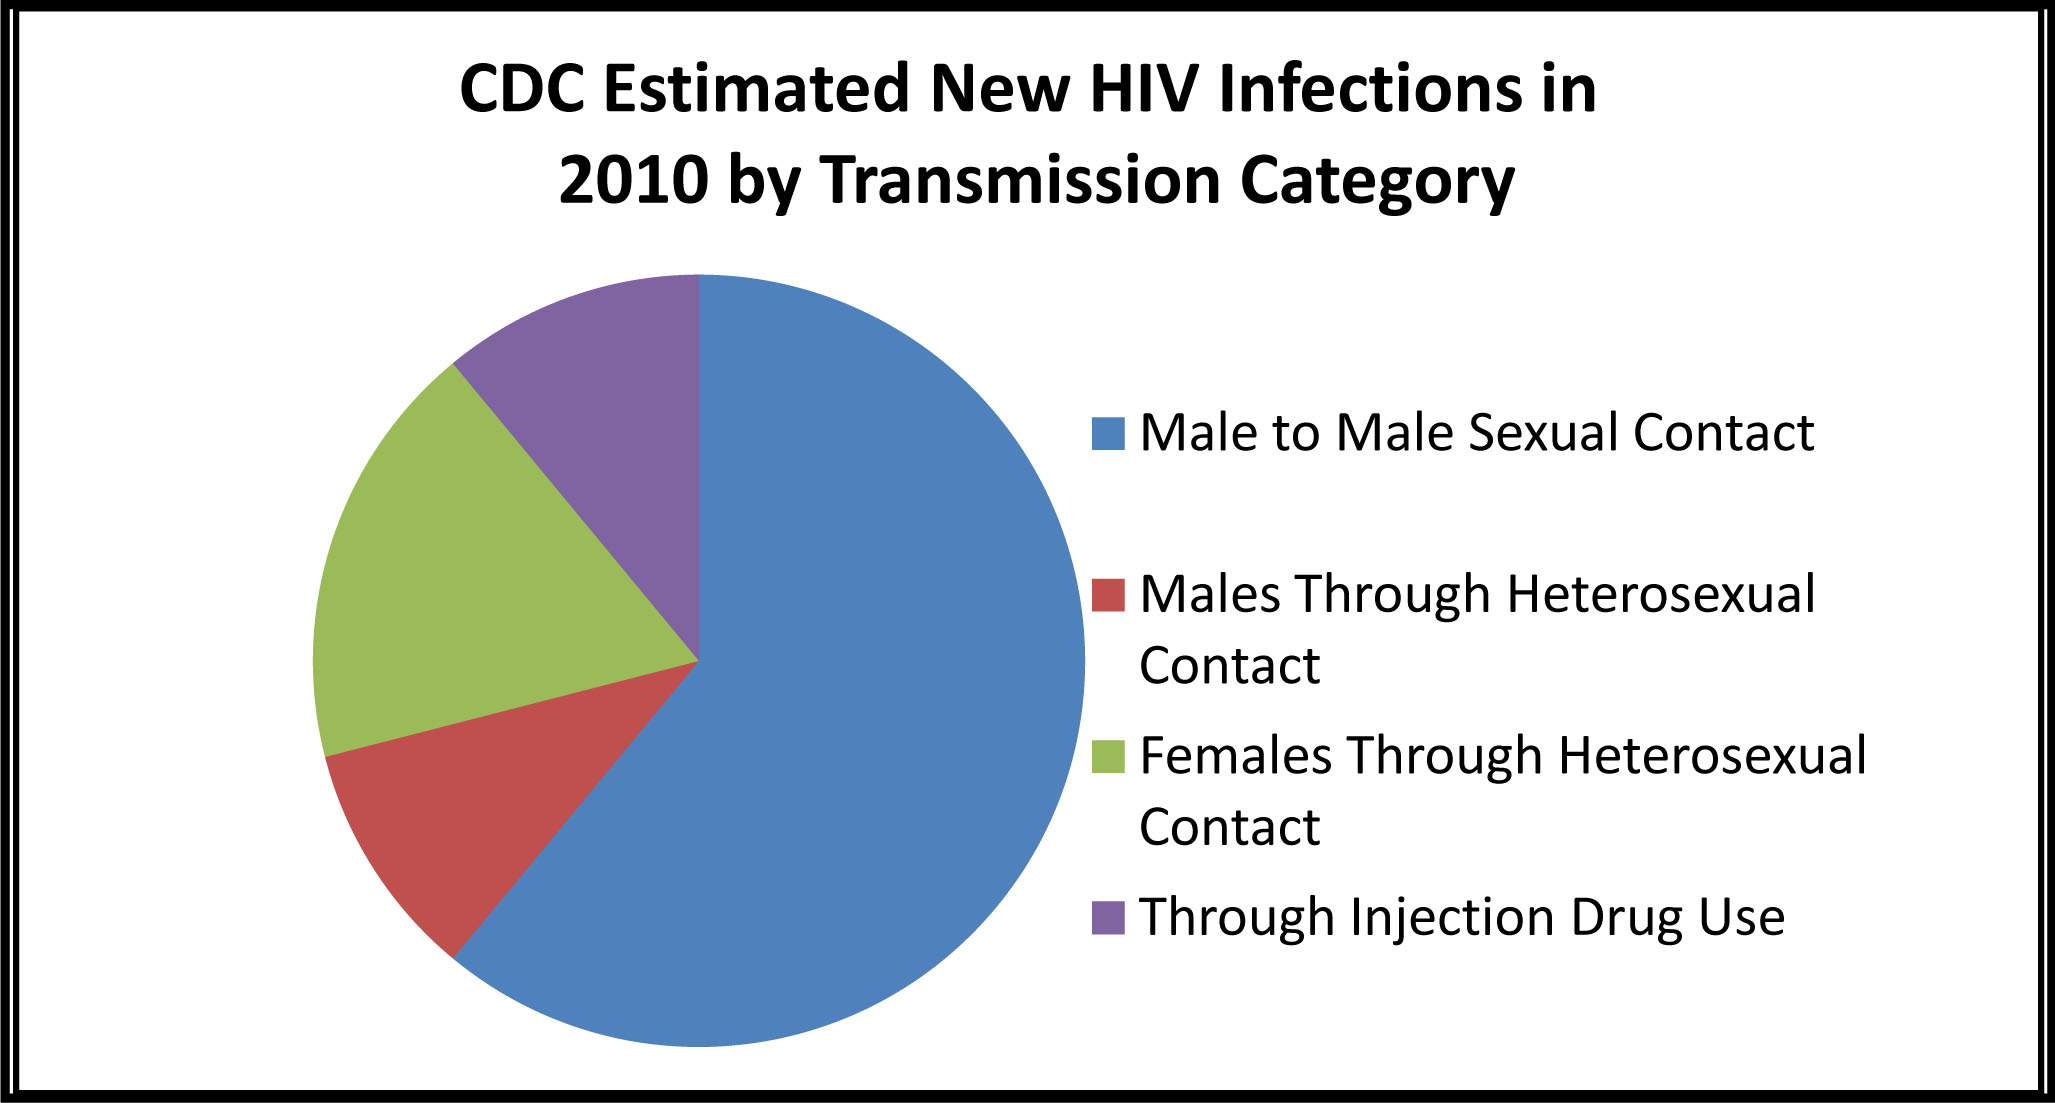 the male homosexual subculture is growing and is at 150 times cdc estimated new hiv infections in 2010 by transmission category